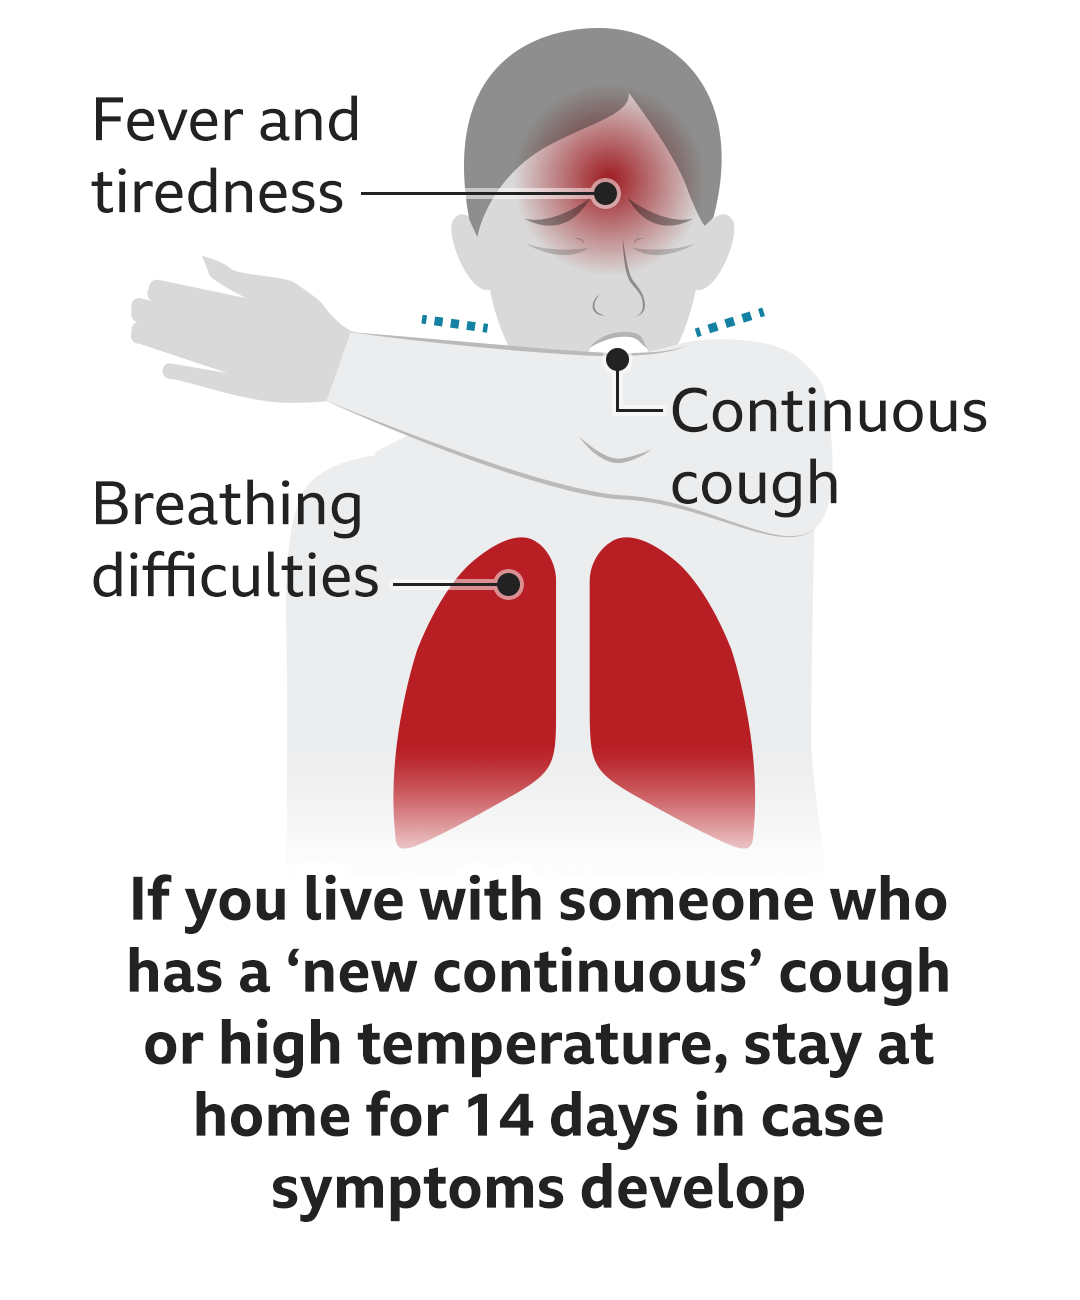 If you live with someone who has a new continuous cough or high temperature you should stay at home for 14 days in case symptoms develop